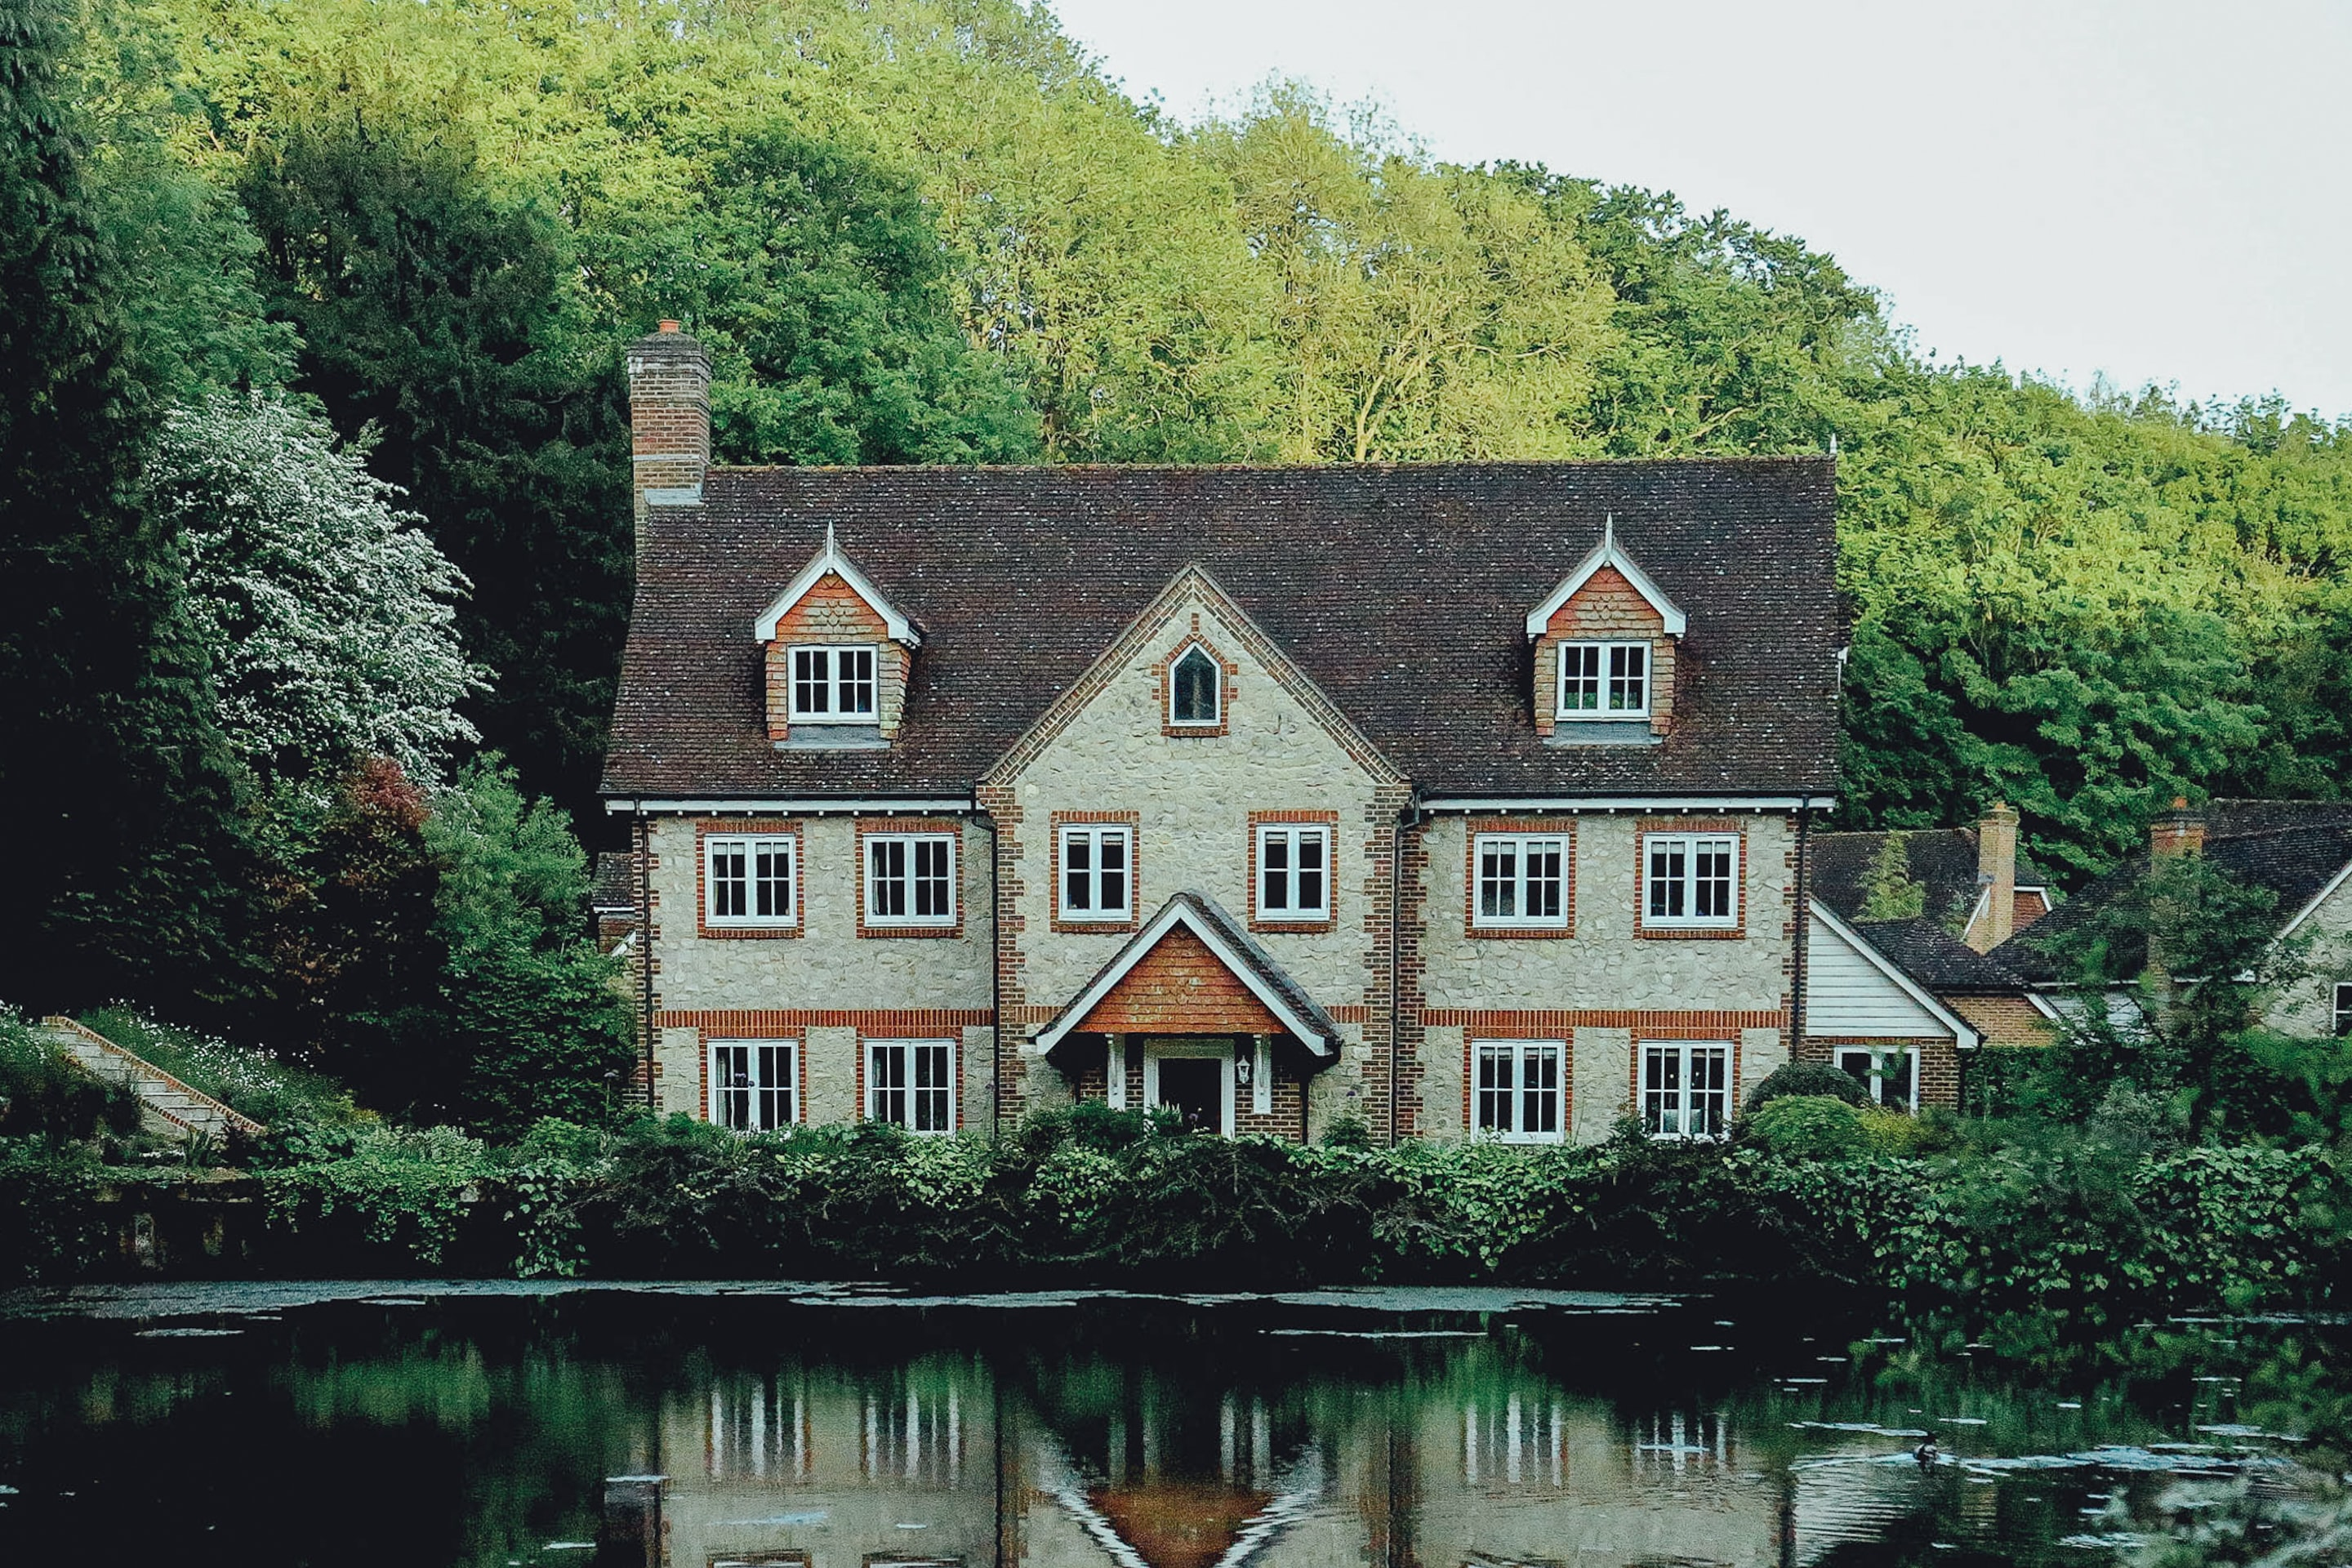 Elegant house in London next to a pond and in front of a forested hill